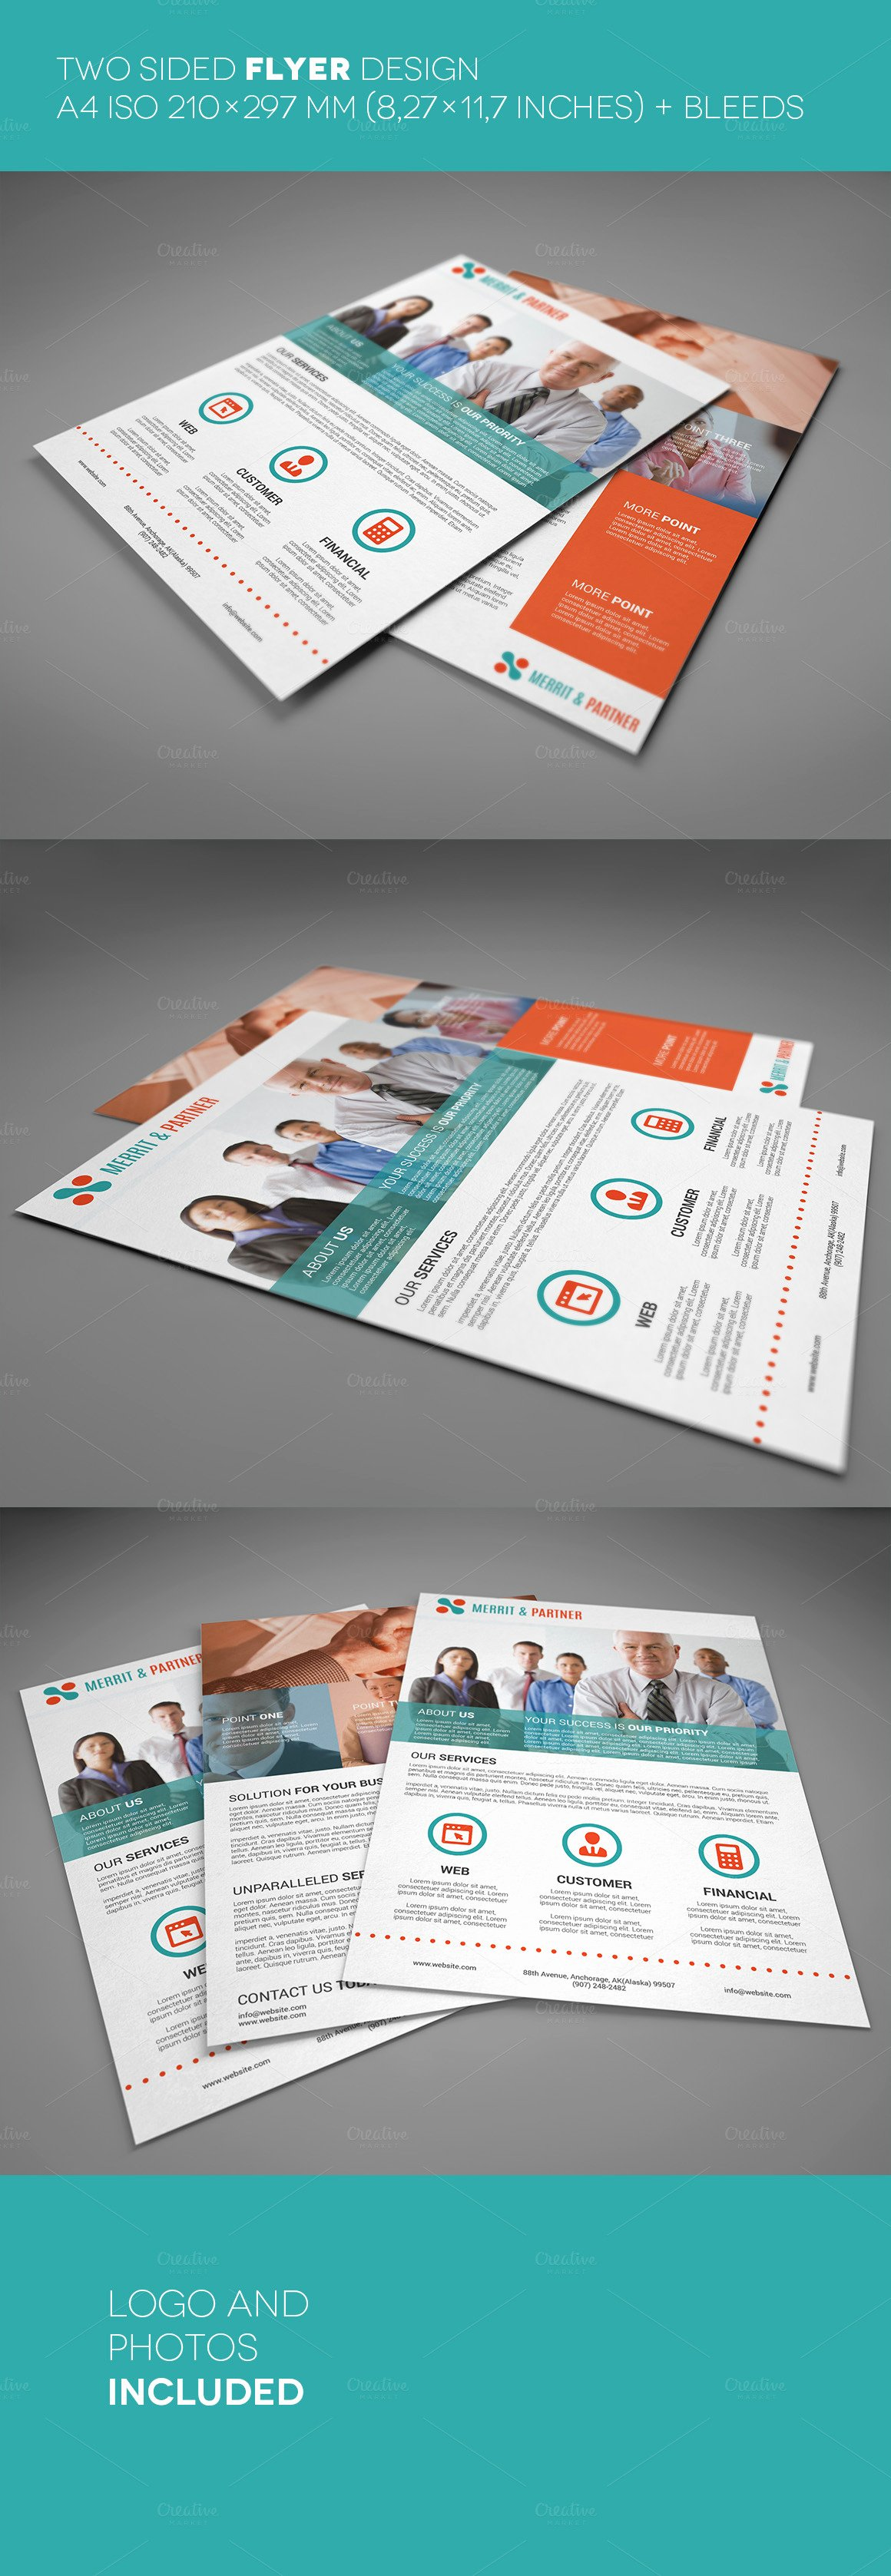 Double Sided Flyer Template Best Of A4 Double Sided Corporate Flyer Flyer Templates On